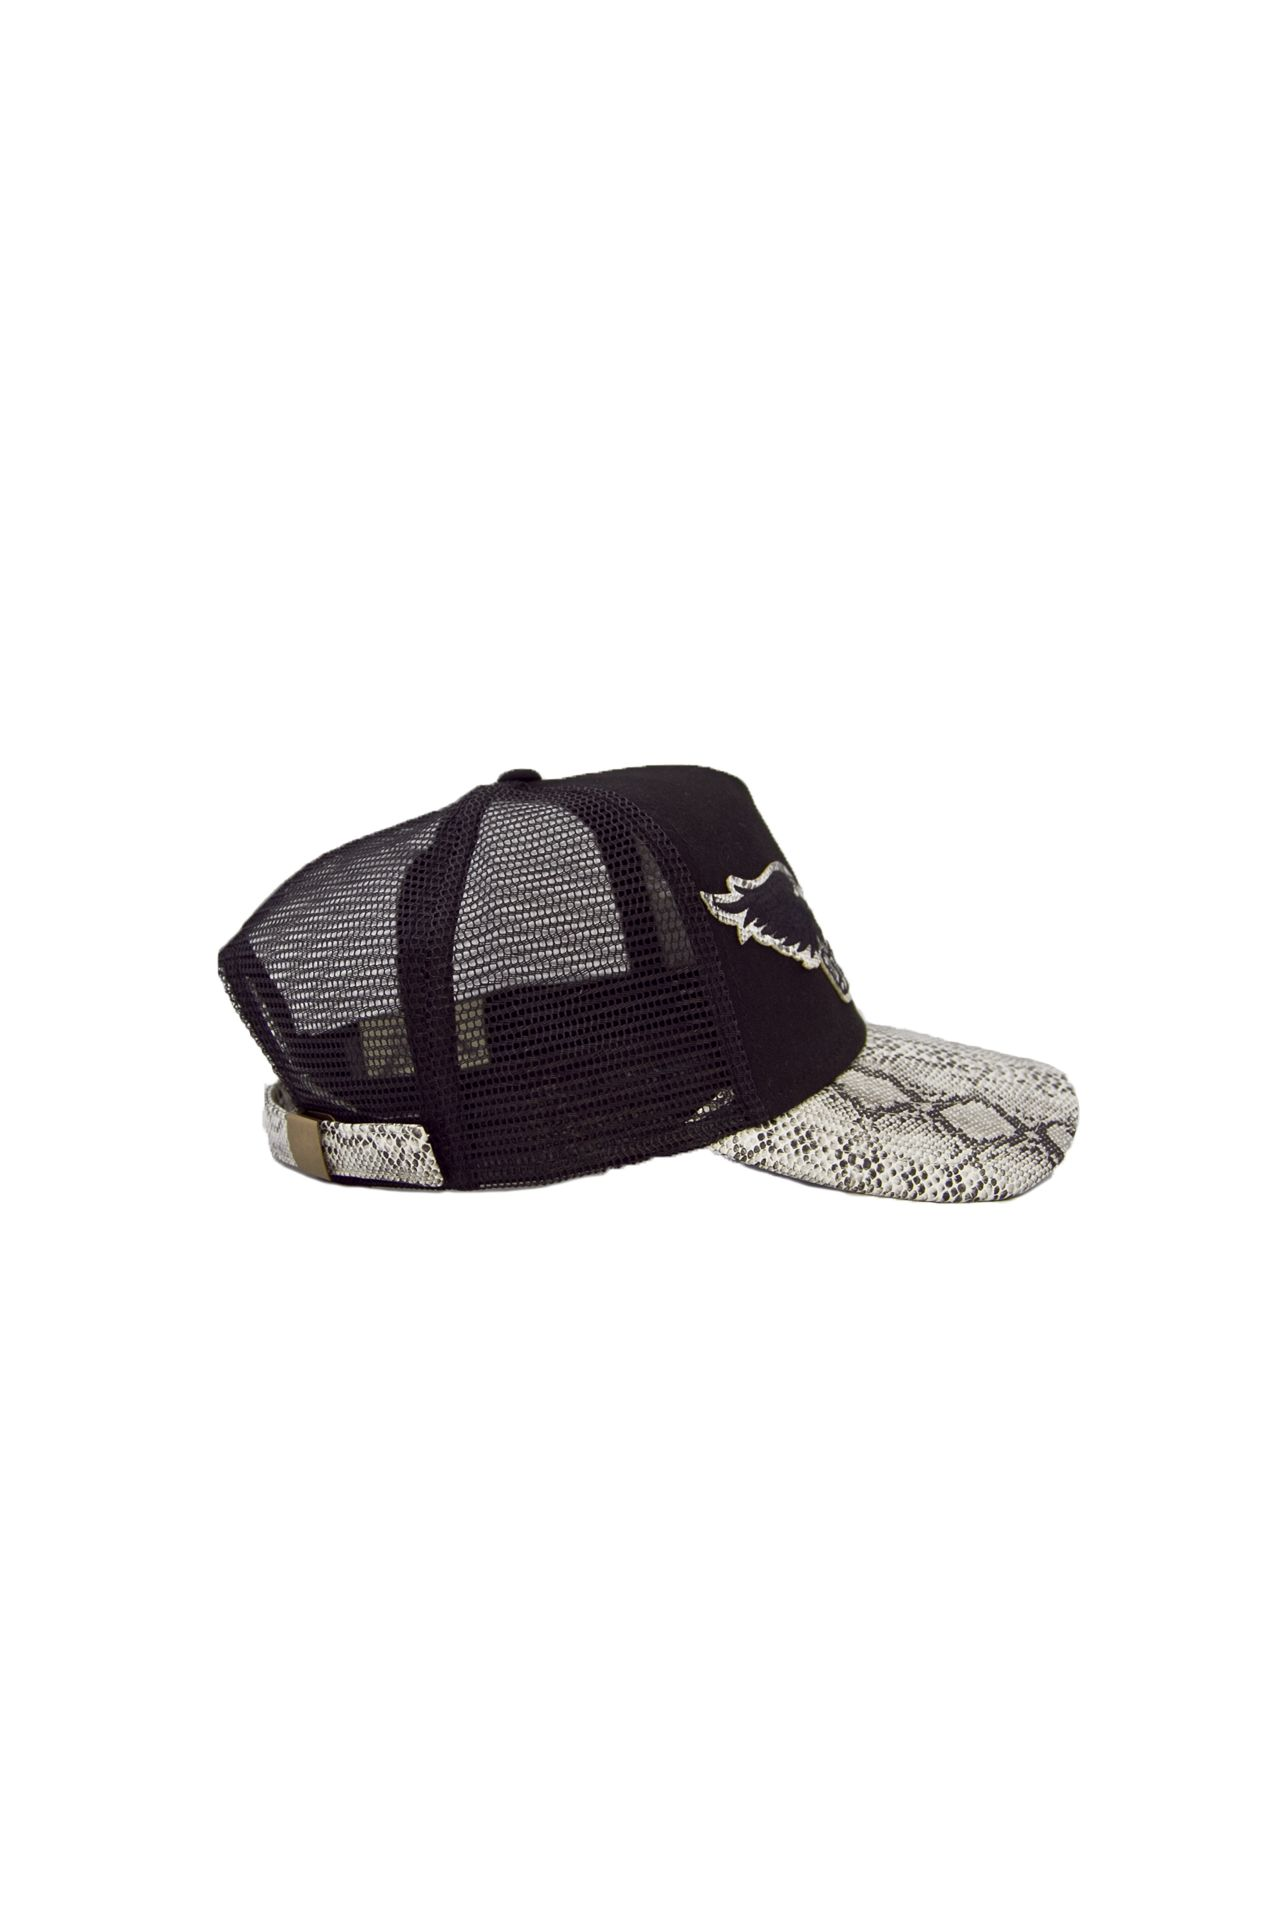 BLACK TWILL CAP WITH WHITE VISOR